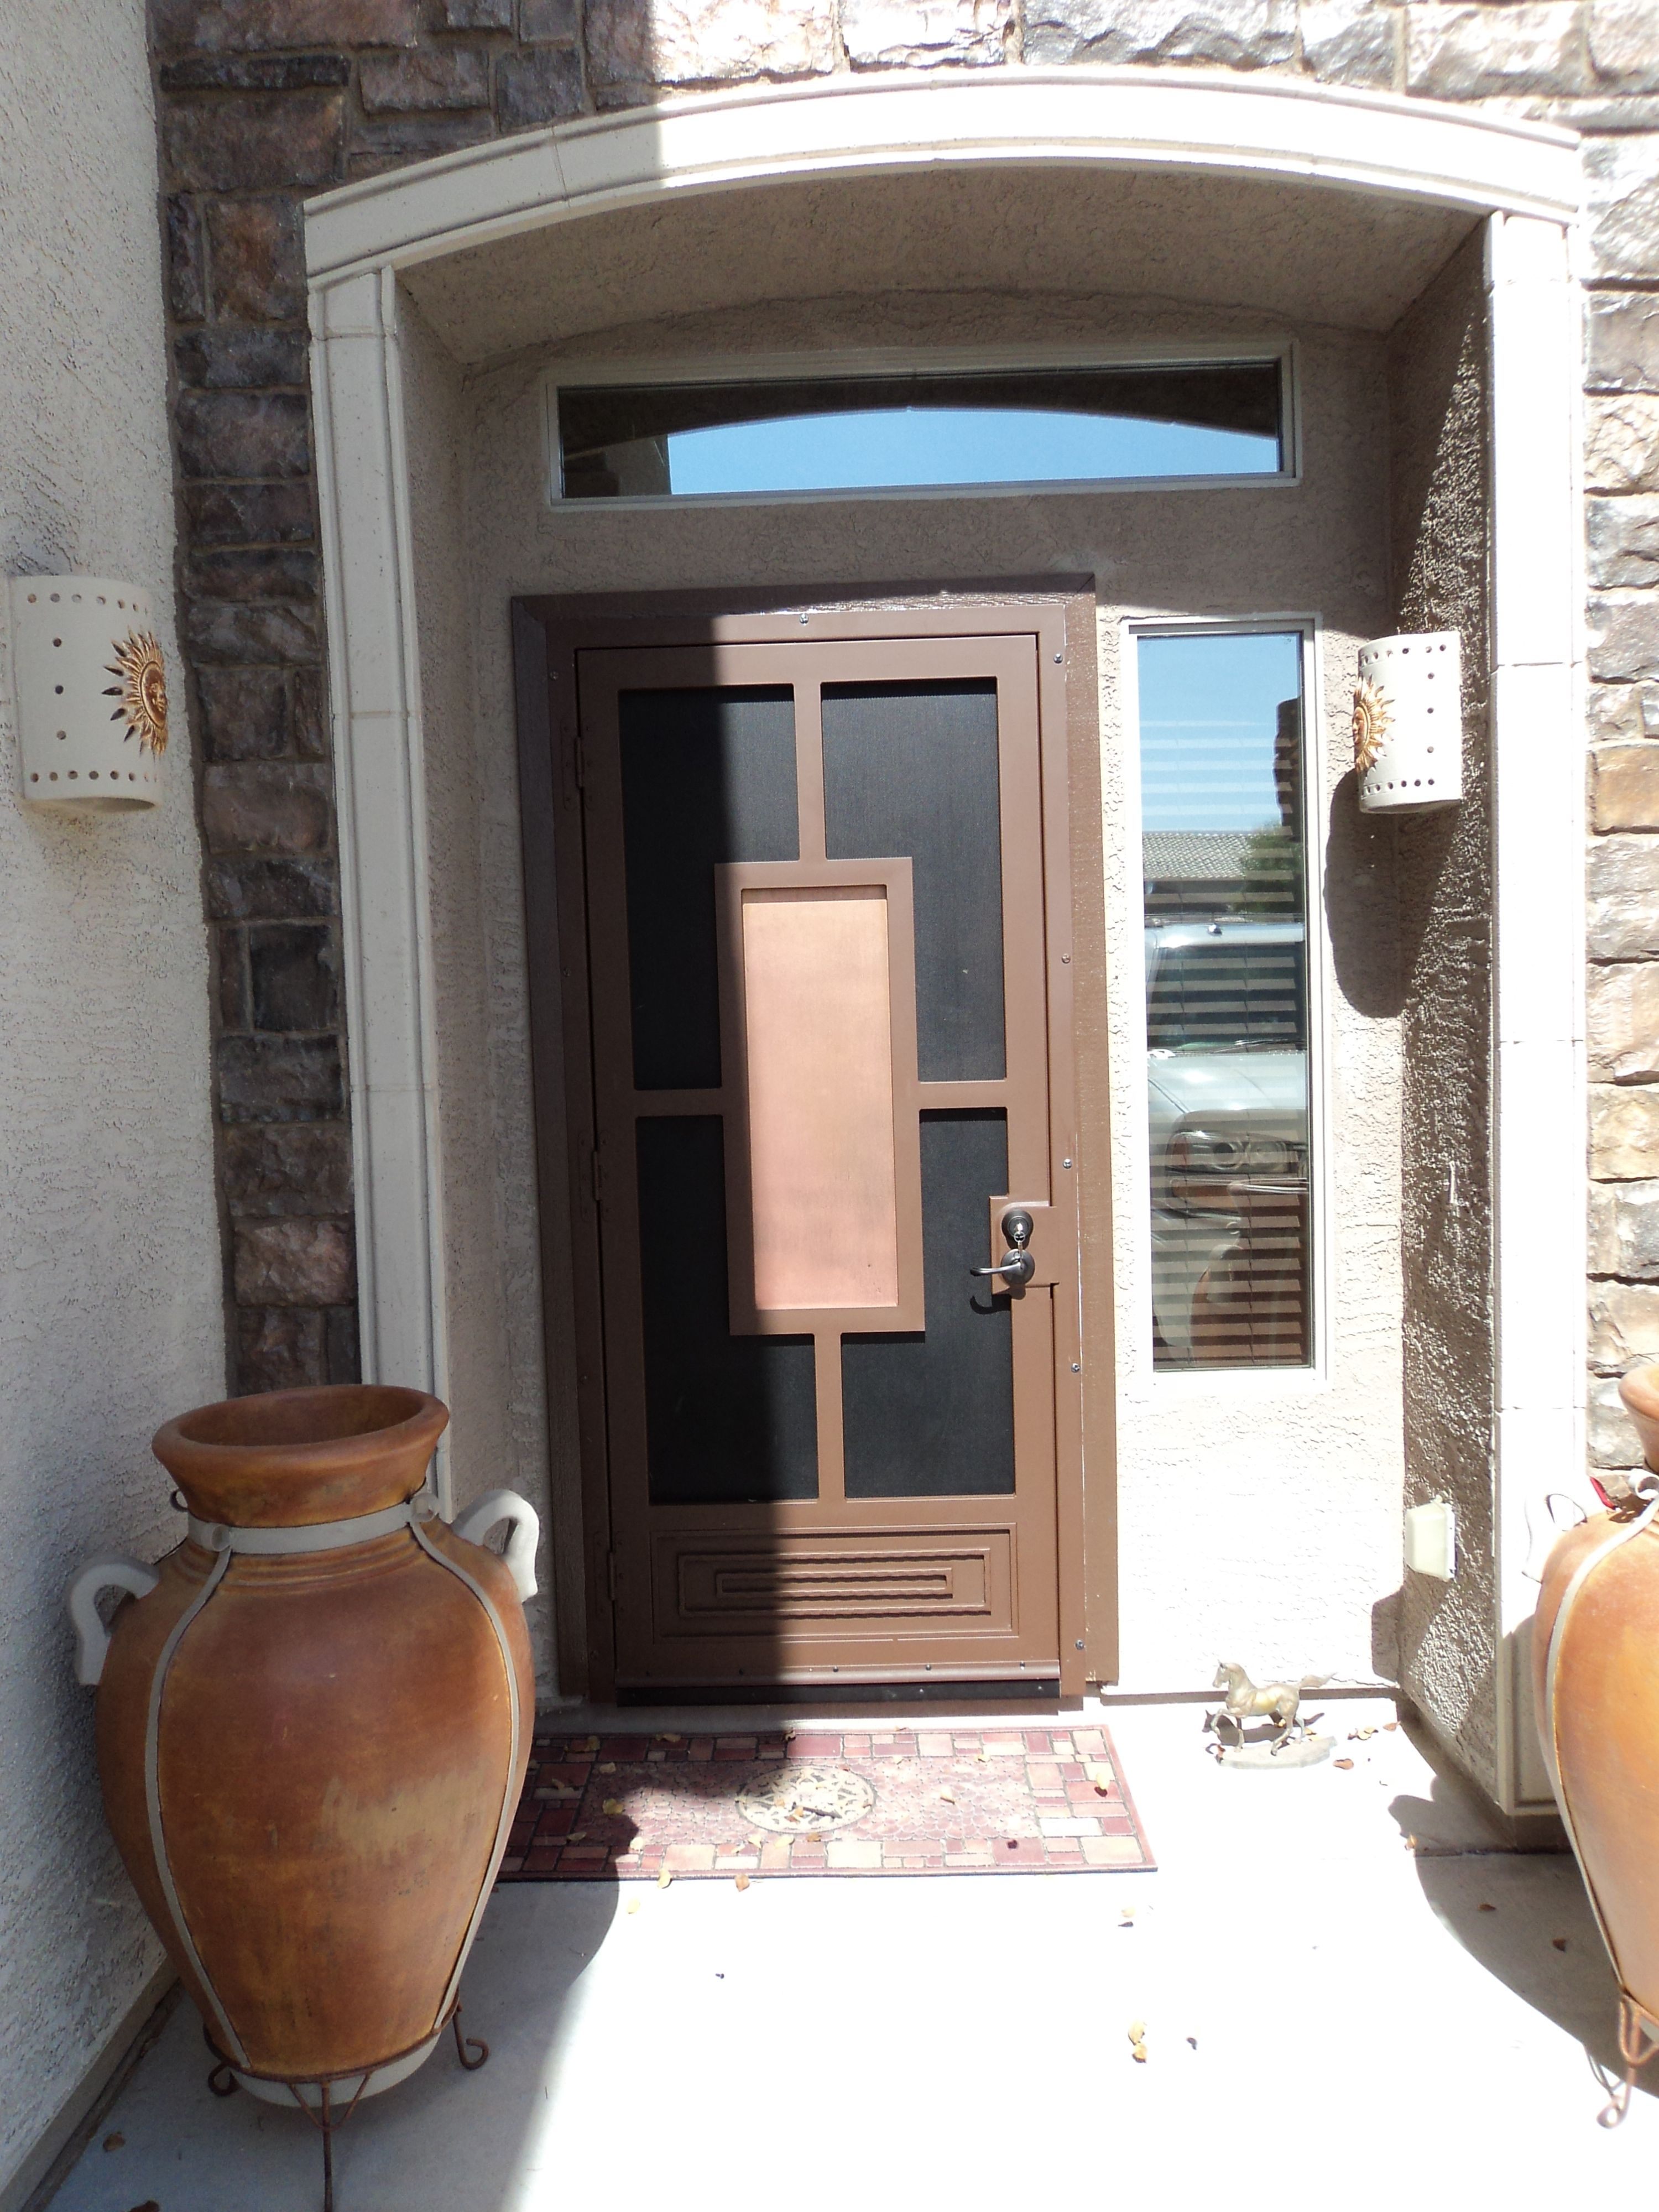 A Custom Security Screen Door That Flows With The Existing Aesthetics And Provides Security And Privacy Sec Security Screen Door Screen Door Security Screen